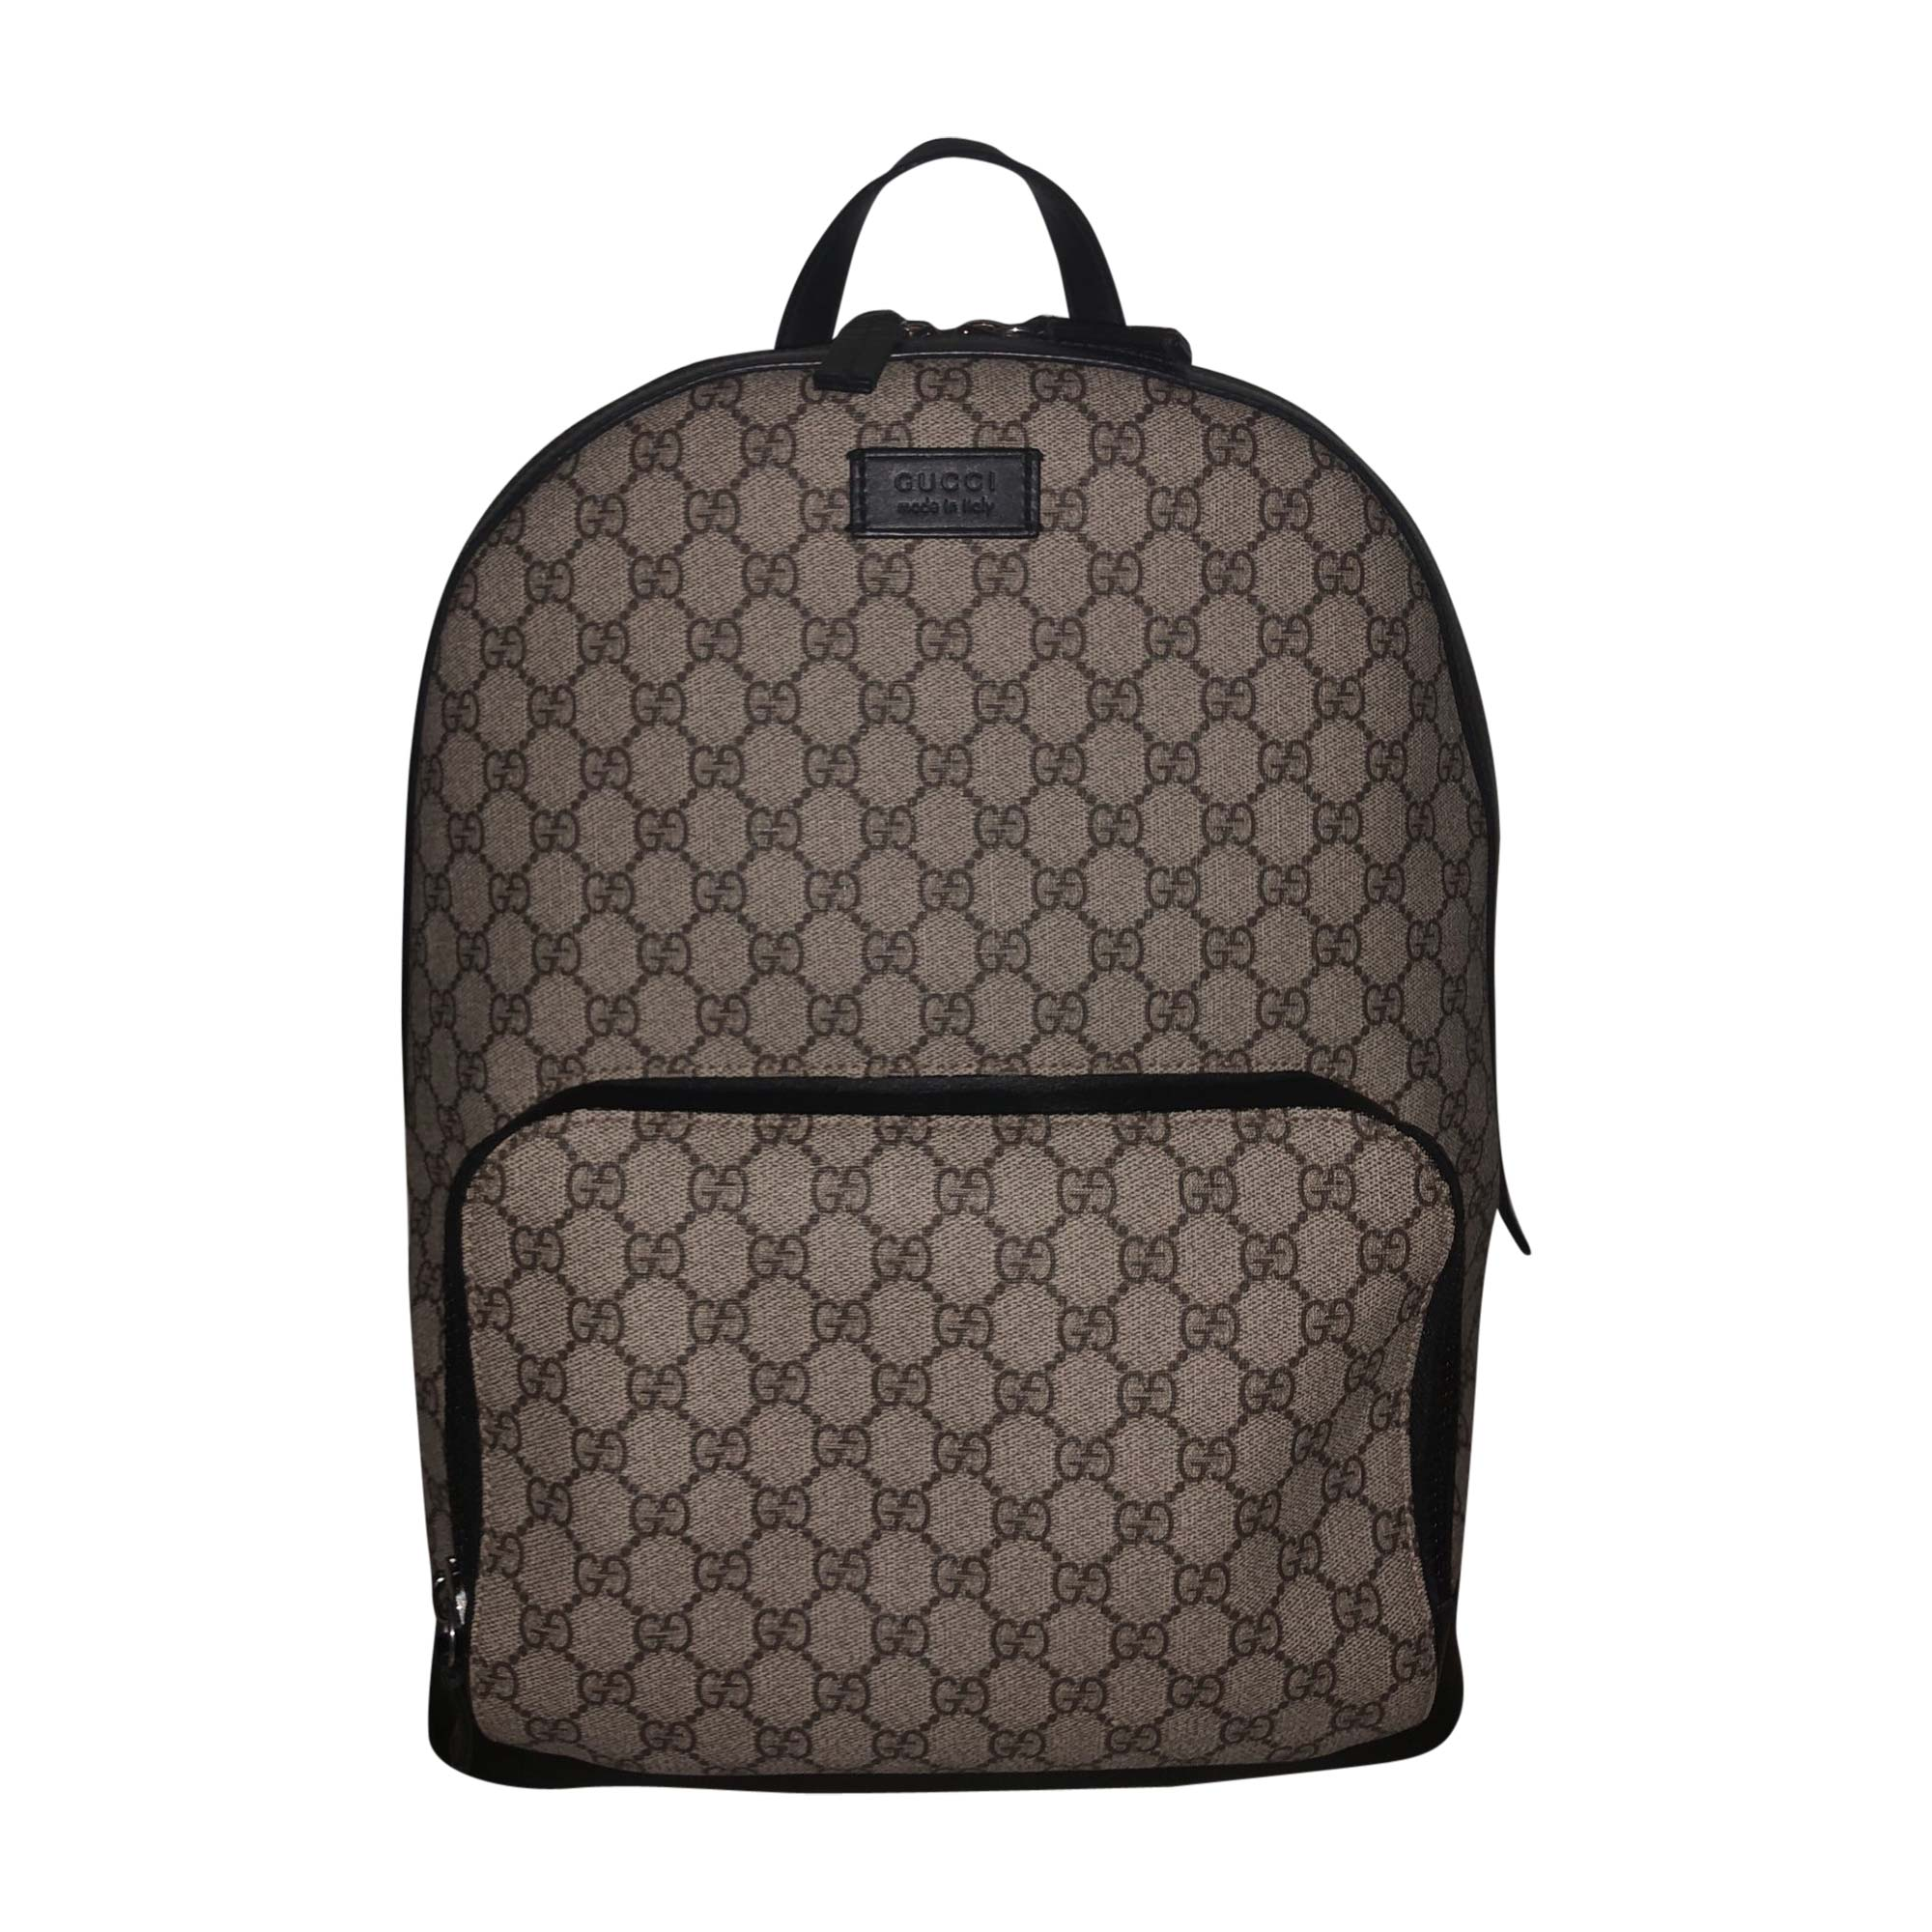 9205d3428cc Backpack GUCCI beige vendu par Wafi105903 - 7929250